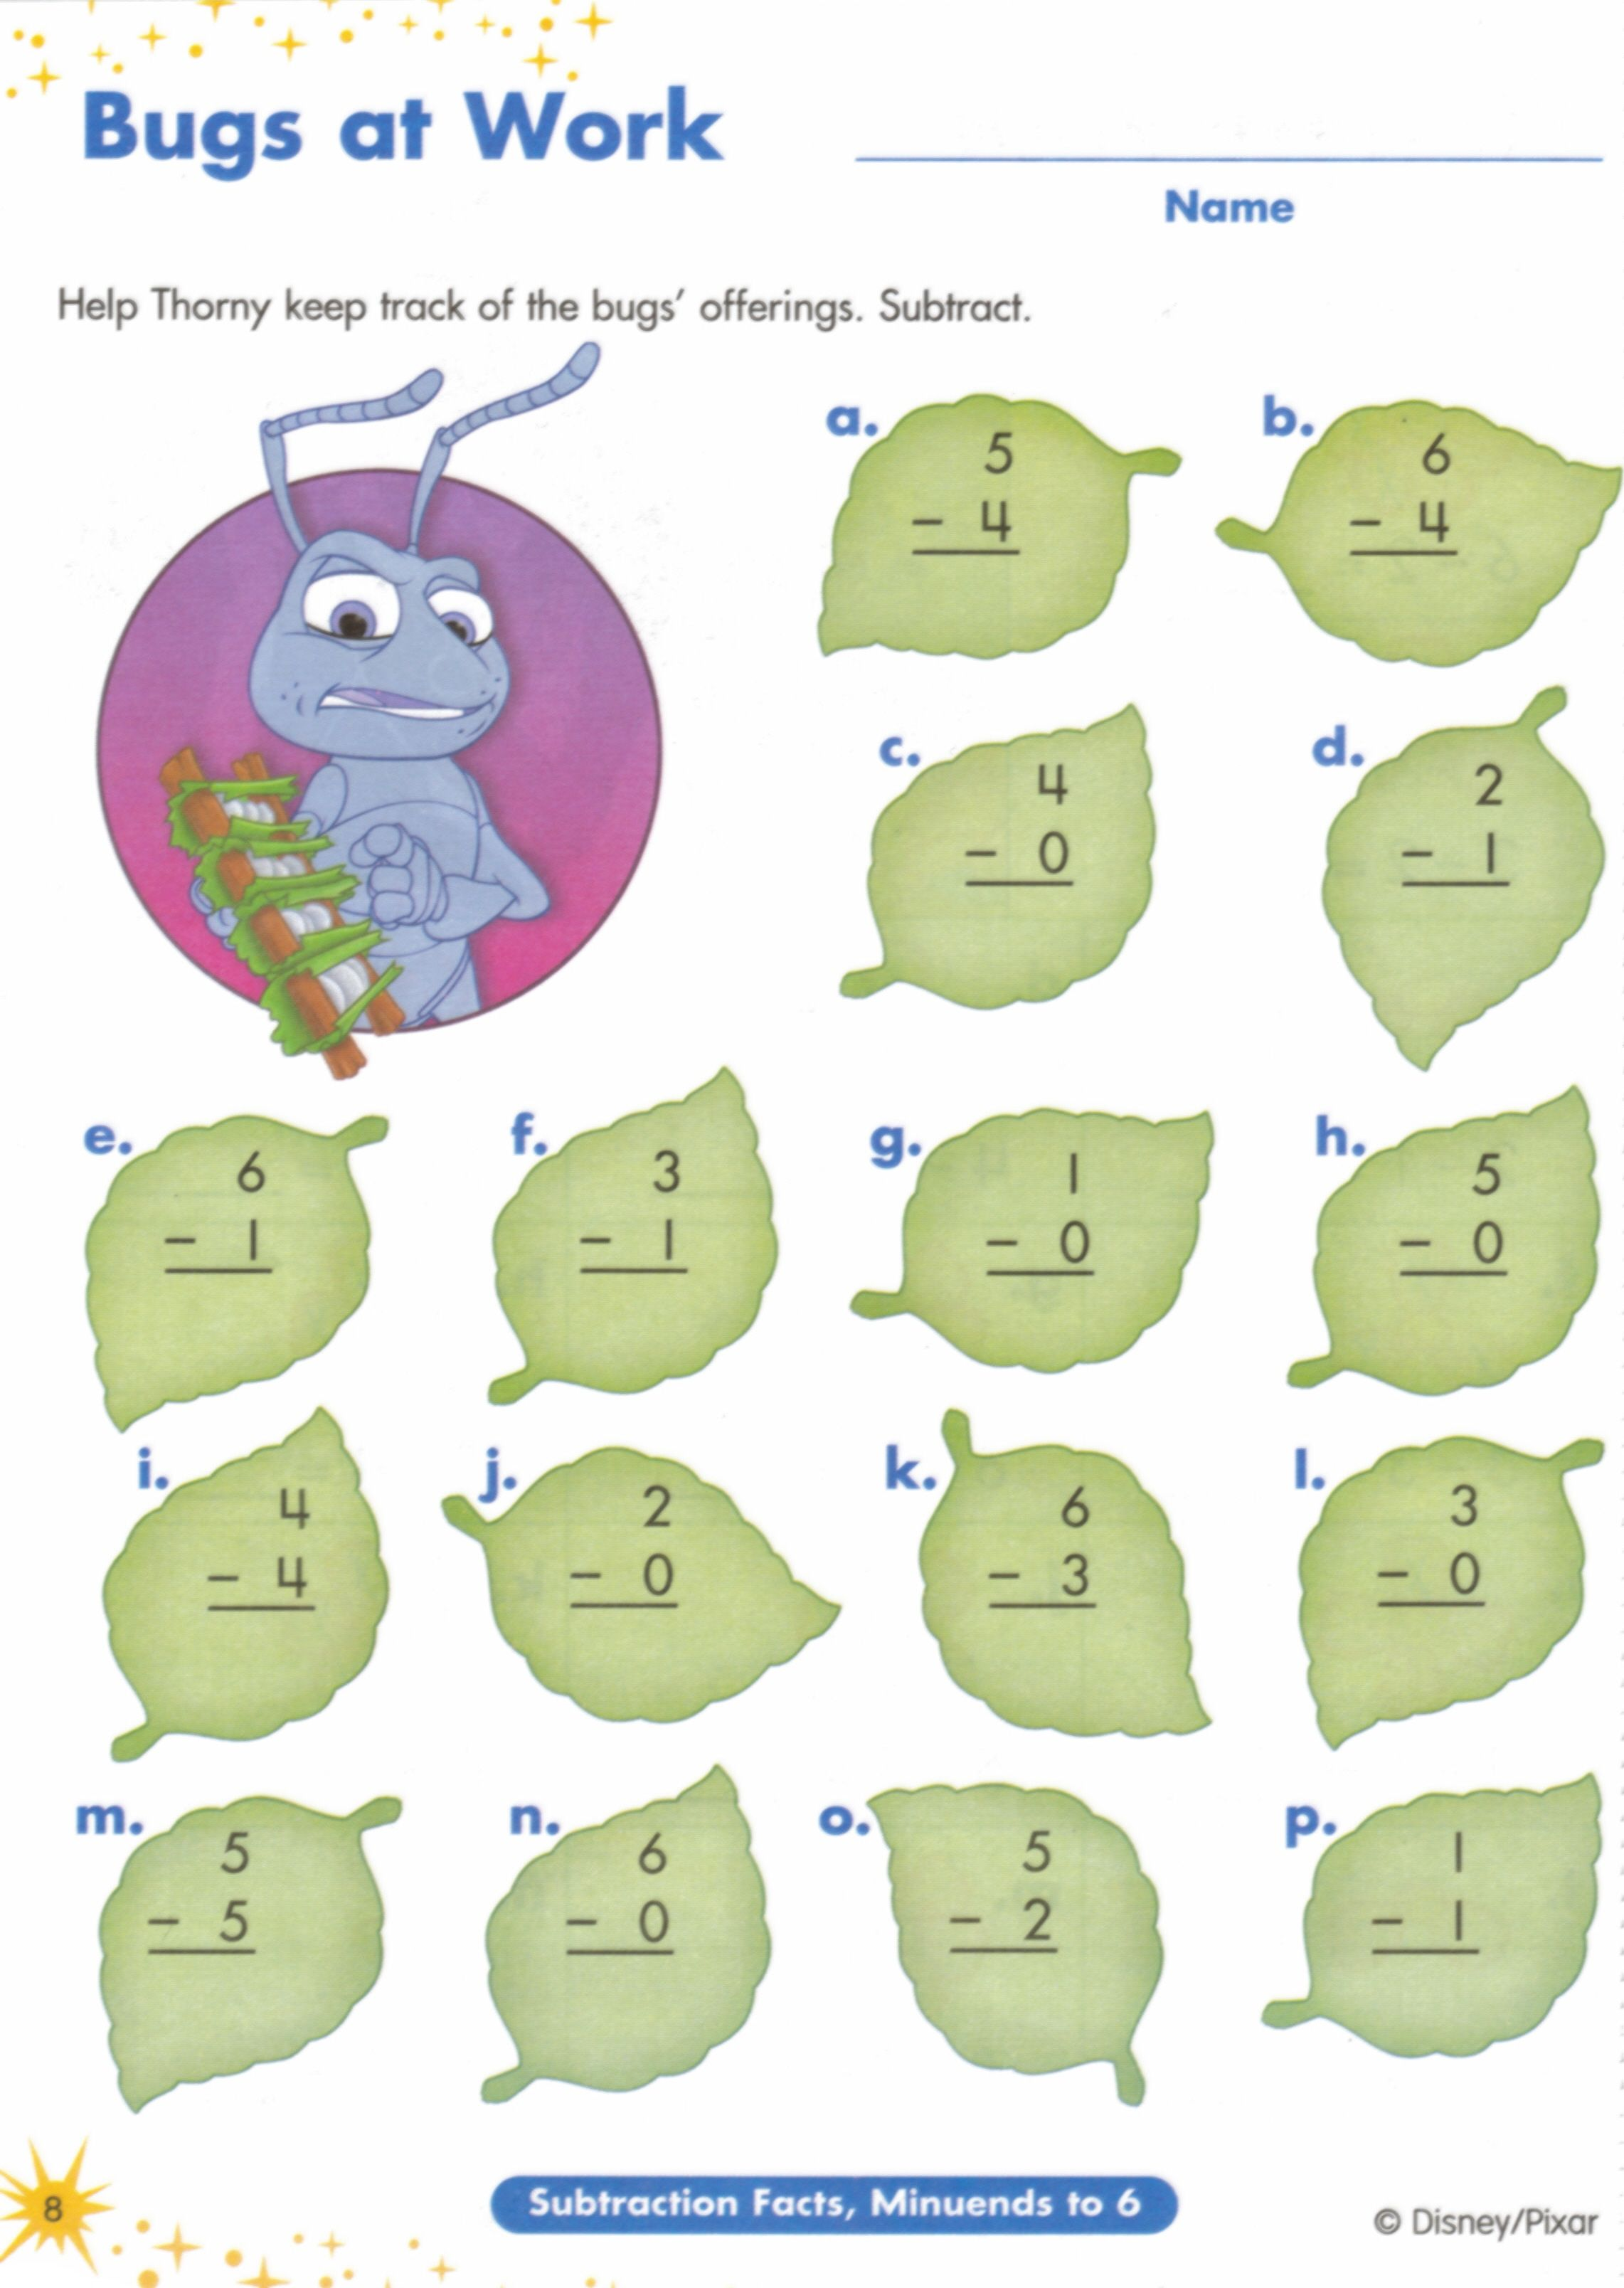 Weirdmailus  Ravishing  Images About Worksheets On Pinterest  Fun Facts For Kids  With Licious  Images About Worksheets On Pinterest  Fun Facts For Kids Earth Day Worksheets And Jungles With Attractive Fun Math Printable Worksheets Also Addition Of  Digit Numbers Worksheet In Addition Worksheets On Ratio And Proportion For Grade  And Download Worksheets As Well As Starfall Phonics Worksheets Additionally Counting Number Worksheets From Pinterestcom With Weirdmailus  Licious  Images About Worksheets On Pinterest  Fun Facts For Kids  With Attractive  Images About Worksheets On Pinterest  Fun Facts For Kids Earth Day Worksheets And Jungles And Ravishing Fun Math Printable Worksheets Also Addition Of  Digit Numbers Worksheet In Addition Worksheets On Ratio And Proportion For Grade  From Pinterestcom